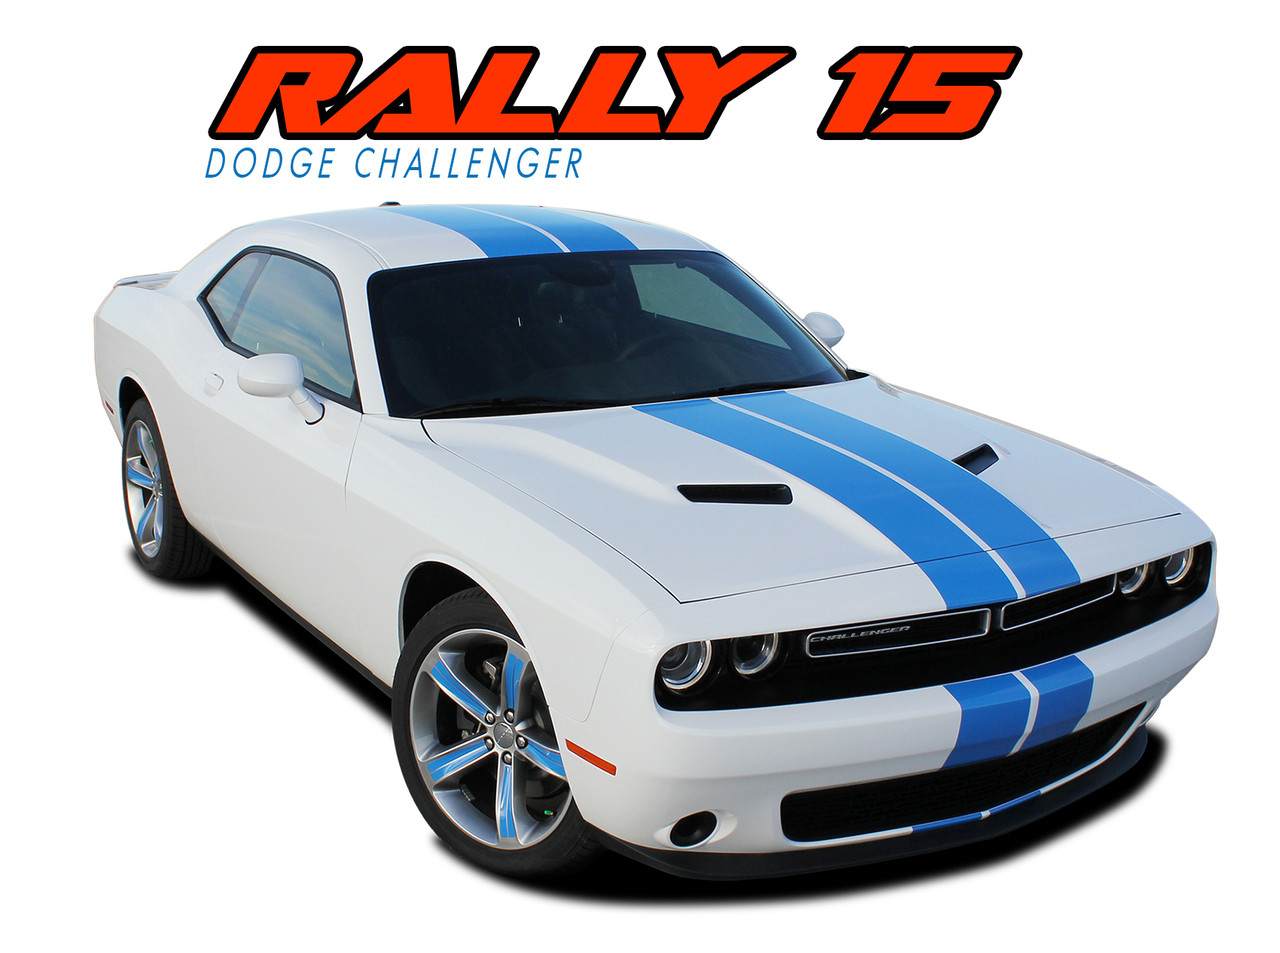 Dodge Challenger Racing Stripes Vinyl Graphics Decals